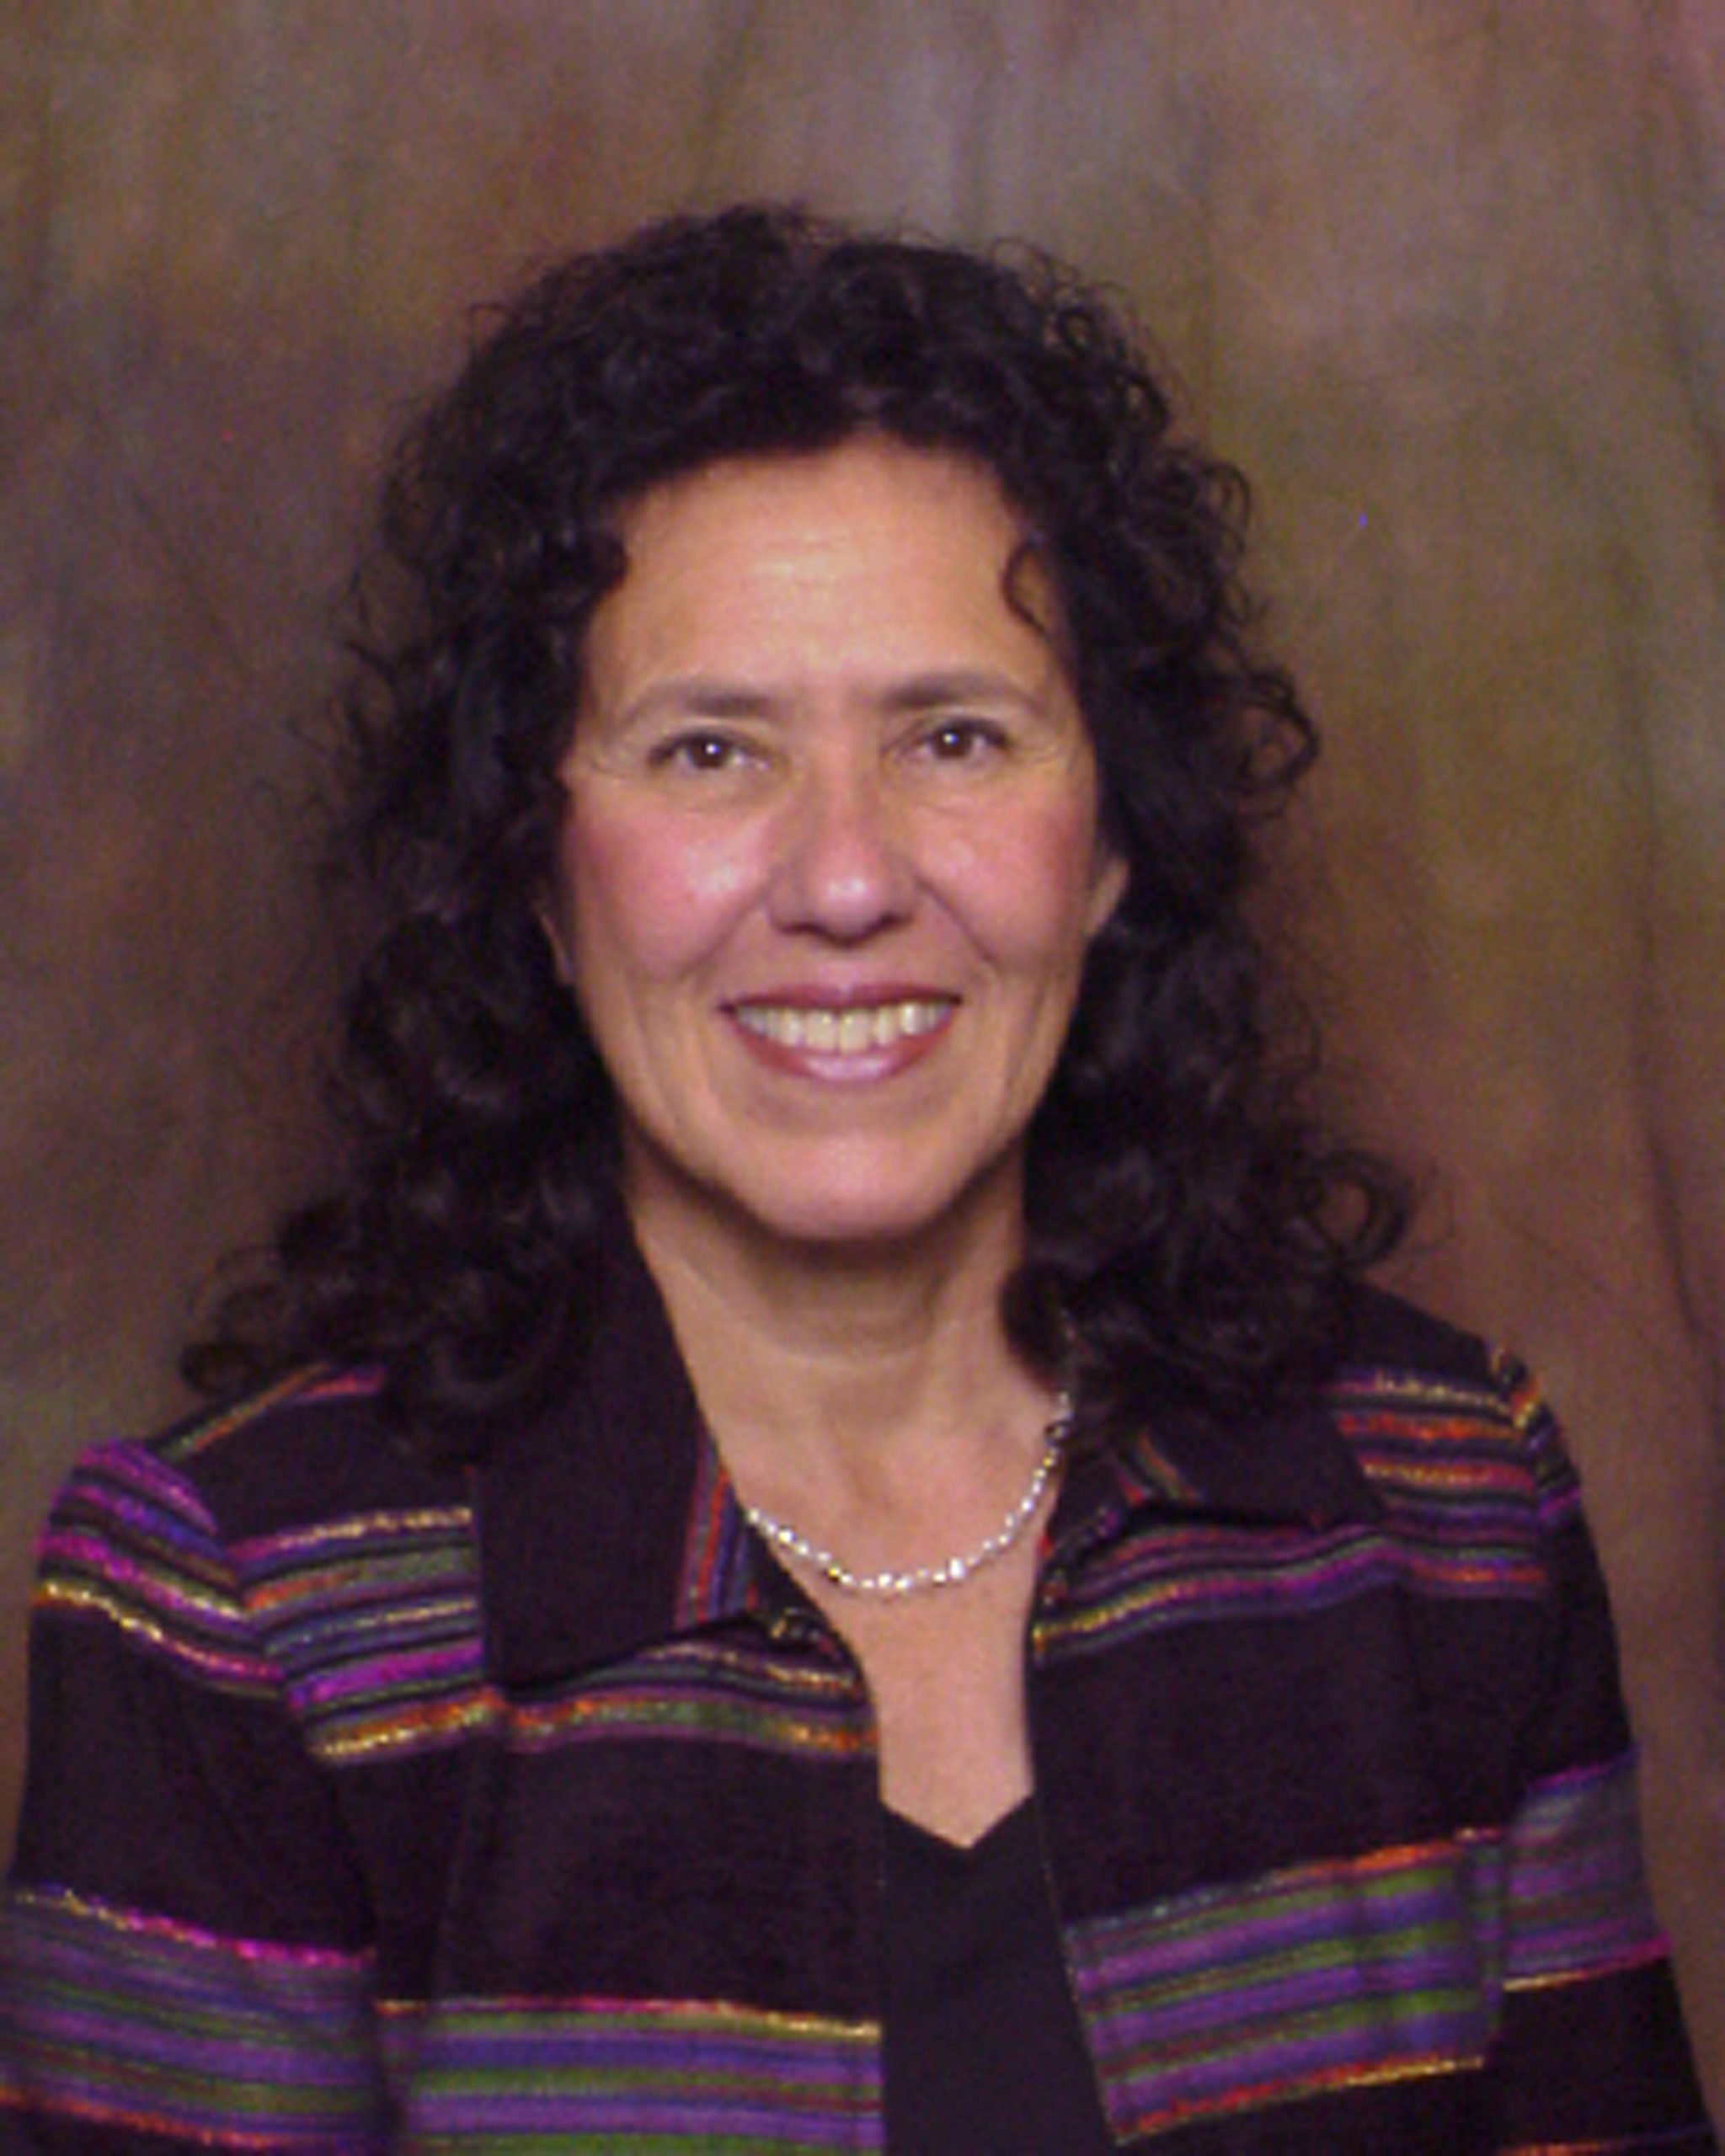 María Fránquiz, professor of education and assistant dean at The University of Texas at Austin, joins the U in January 2014 as dean of the College of Education.